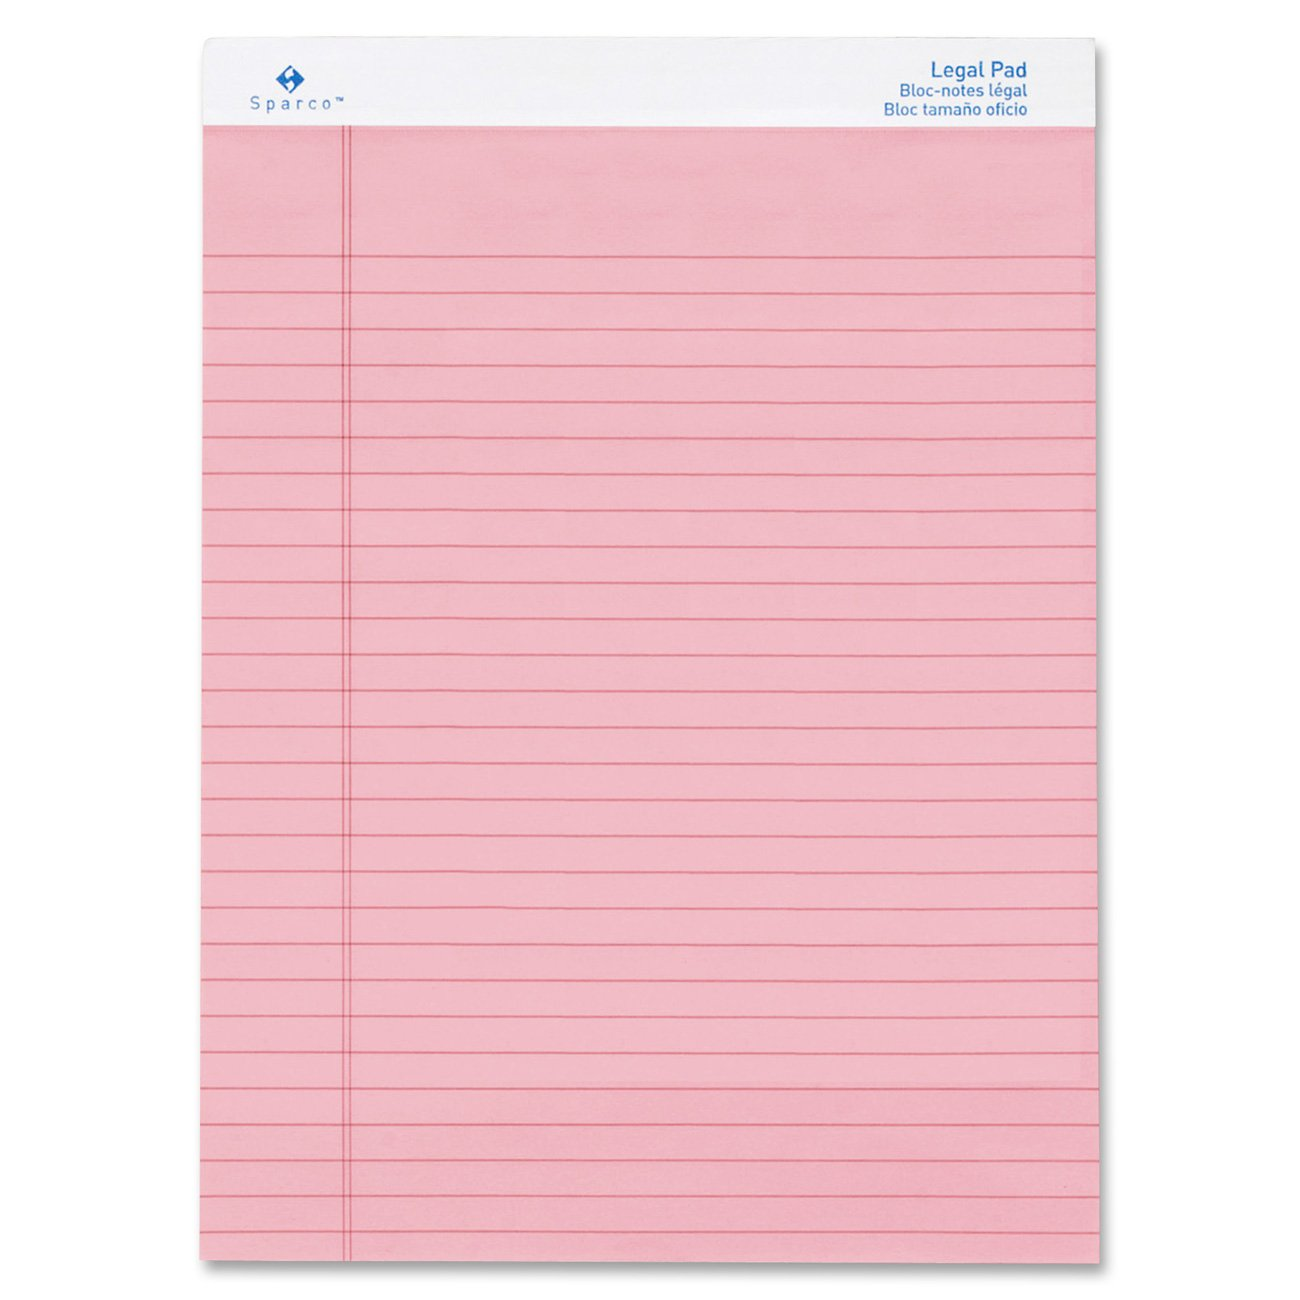 Sparco Rose Legal Ruled Pads by Sparco